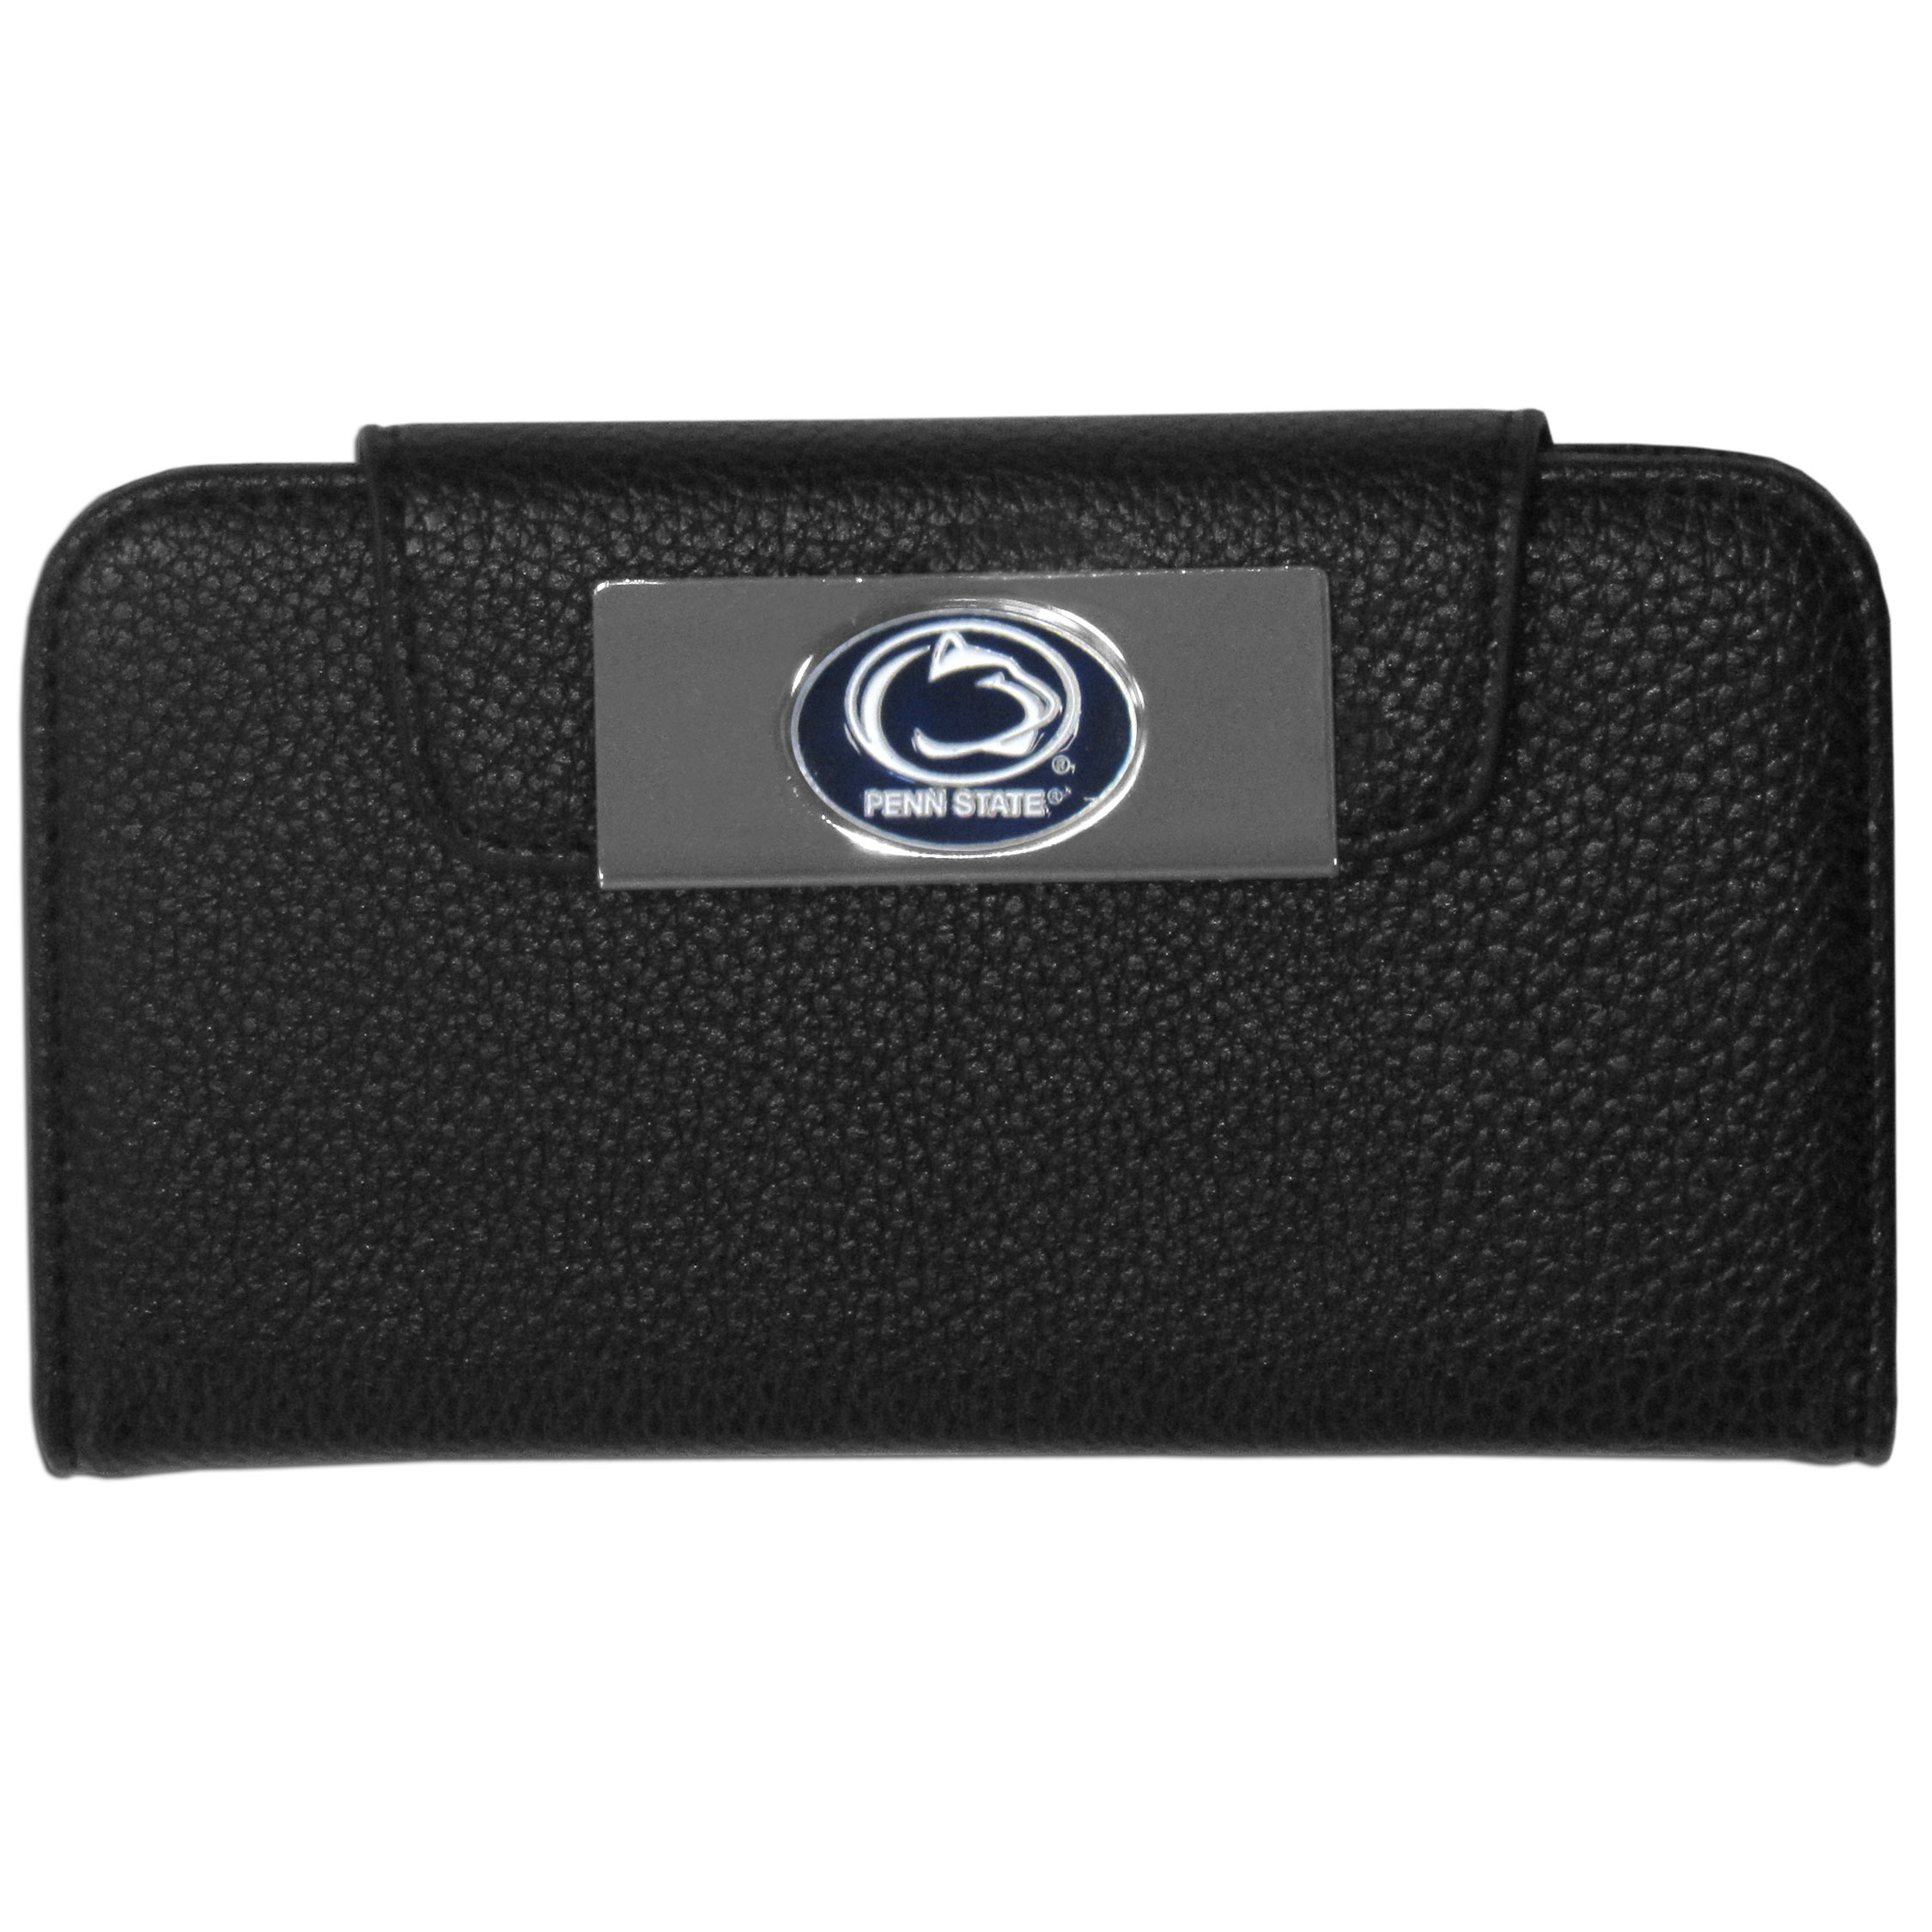 Penn St. Nittany Lions iPhone 5/5S Wallet Case - This new & wildly popular case is ideal for those who like to travel light! The stylish case has an inner hard shell that securely holds your phone while allowing complete access to the phone's functionality. The flip cover has slots for credit cards, business cards and identification. The magnetic flip cover has a metal Penn St. Nittany Lions emblem on a high polish chrome backing. Fits the iPhone 5/5S